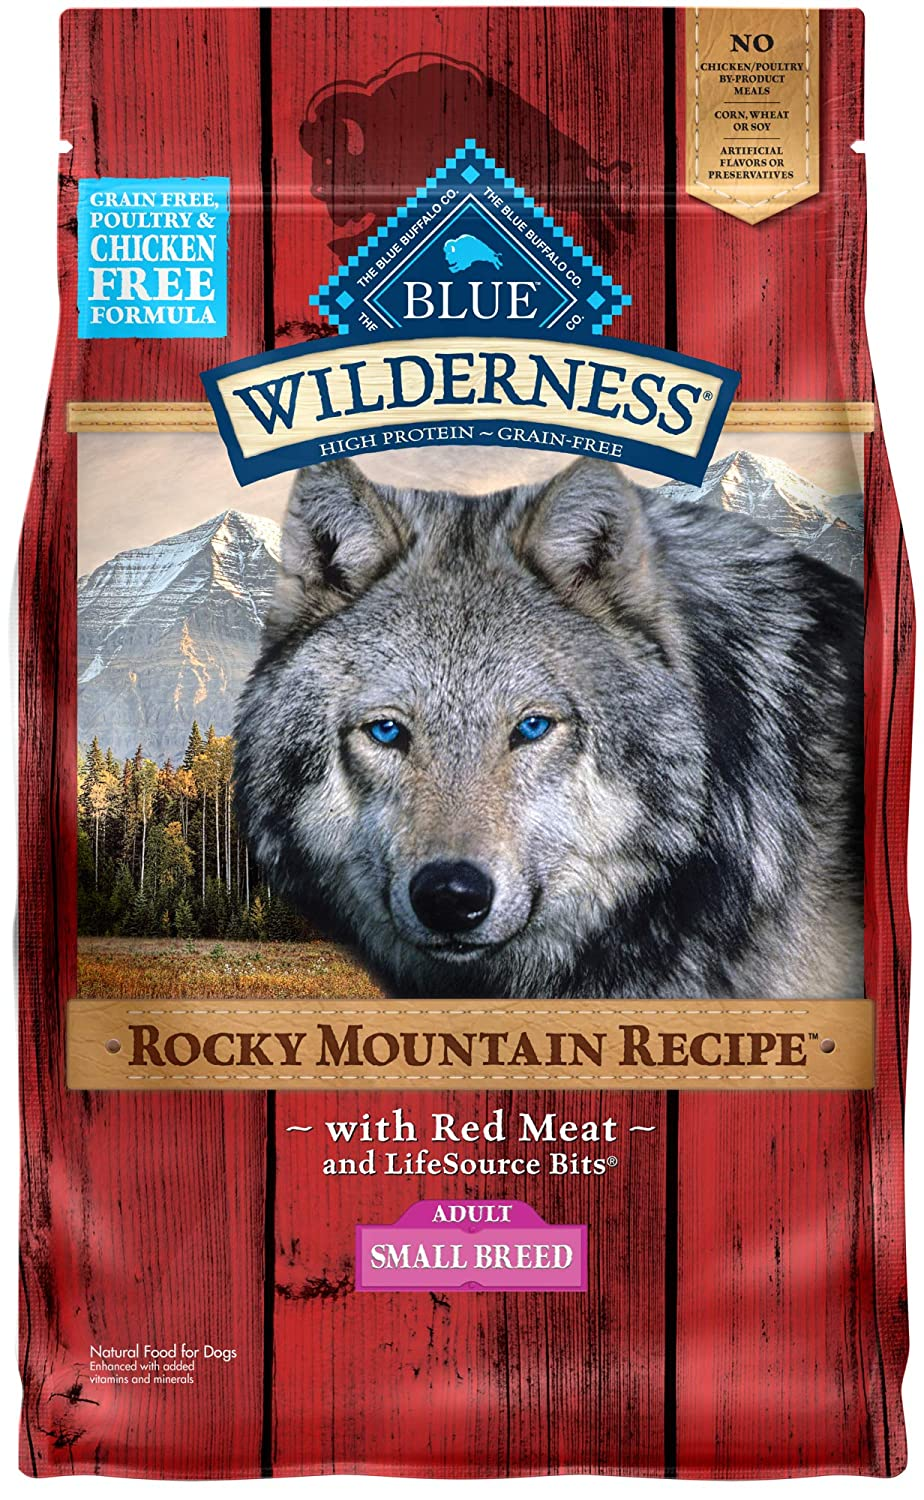 2.Blue Buffalo Wilderness Rocky Mountain Recipe Small Breed Grain-Free Dry Dog Food